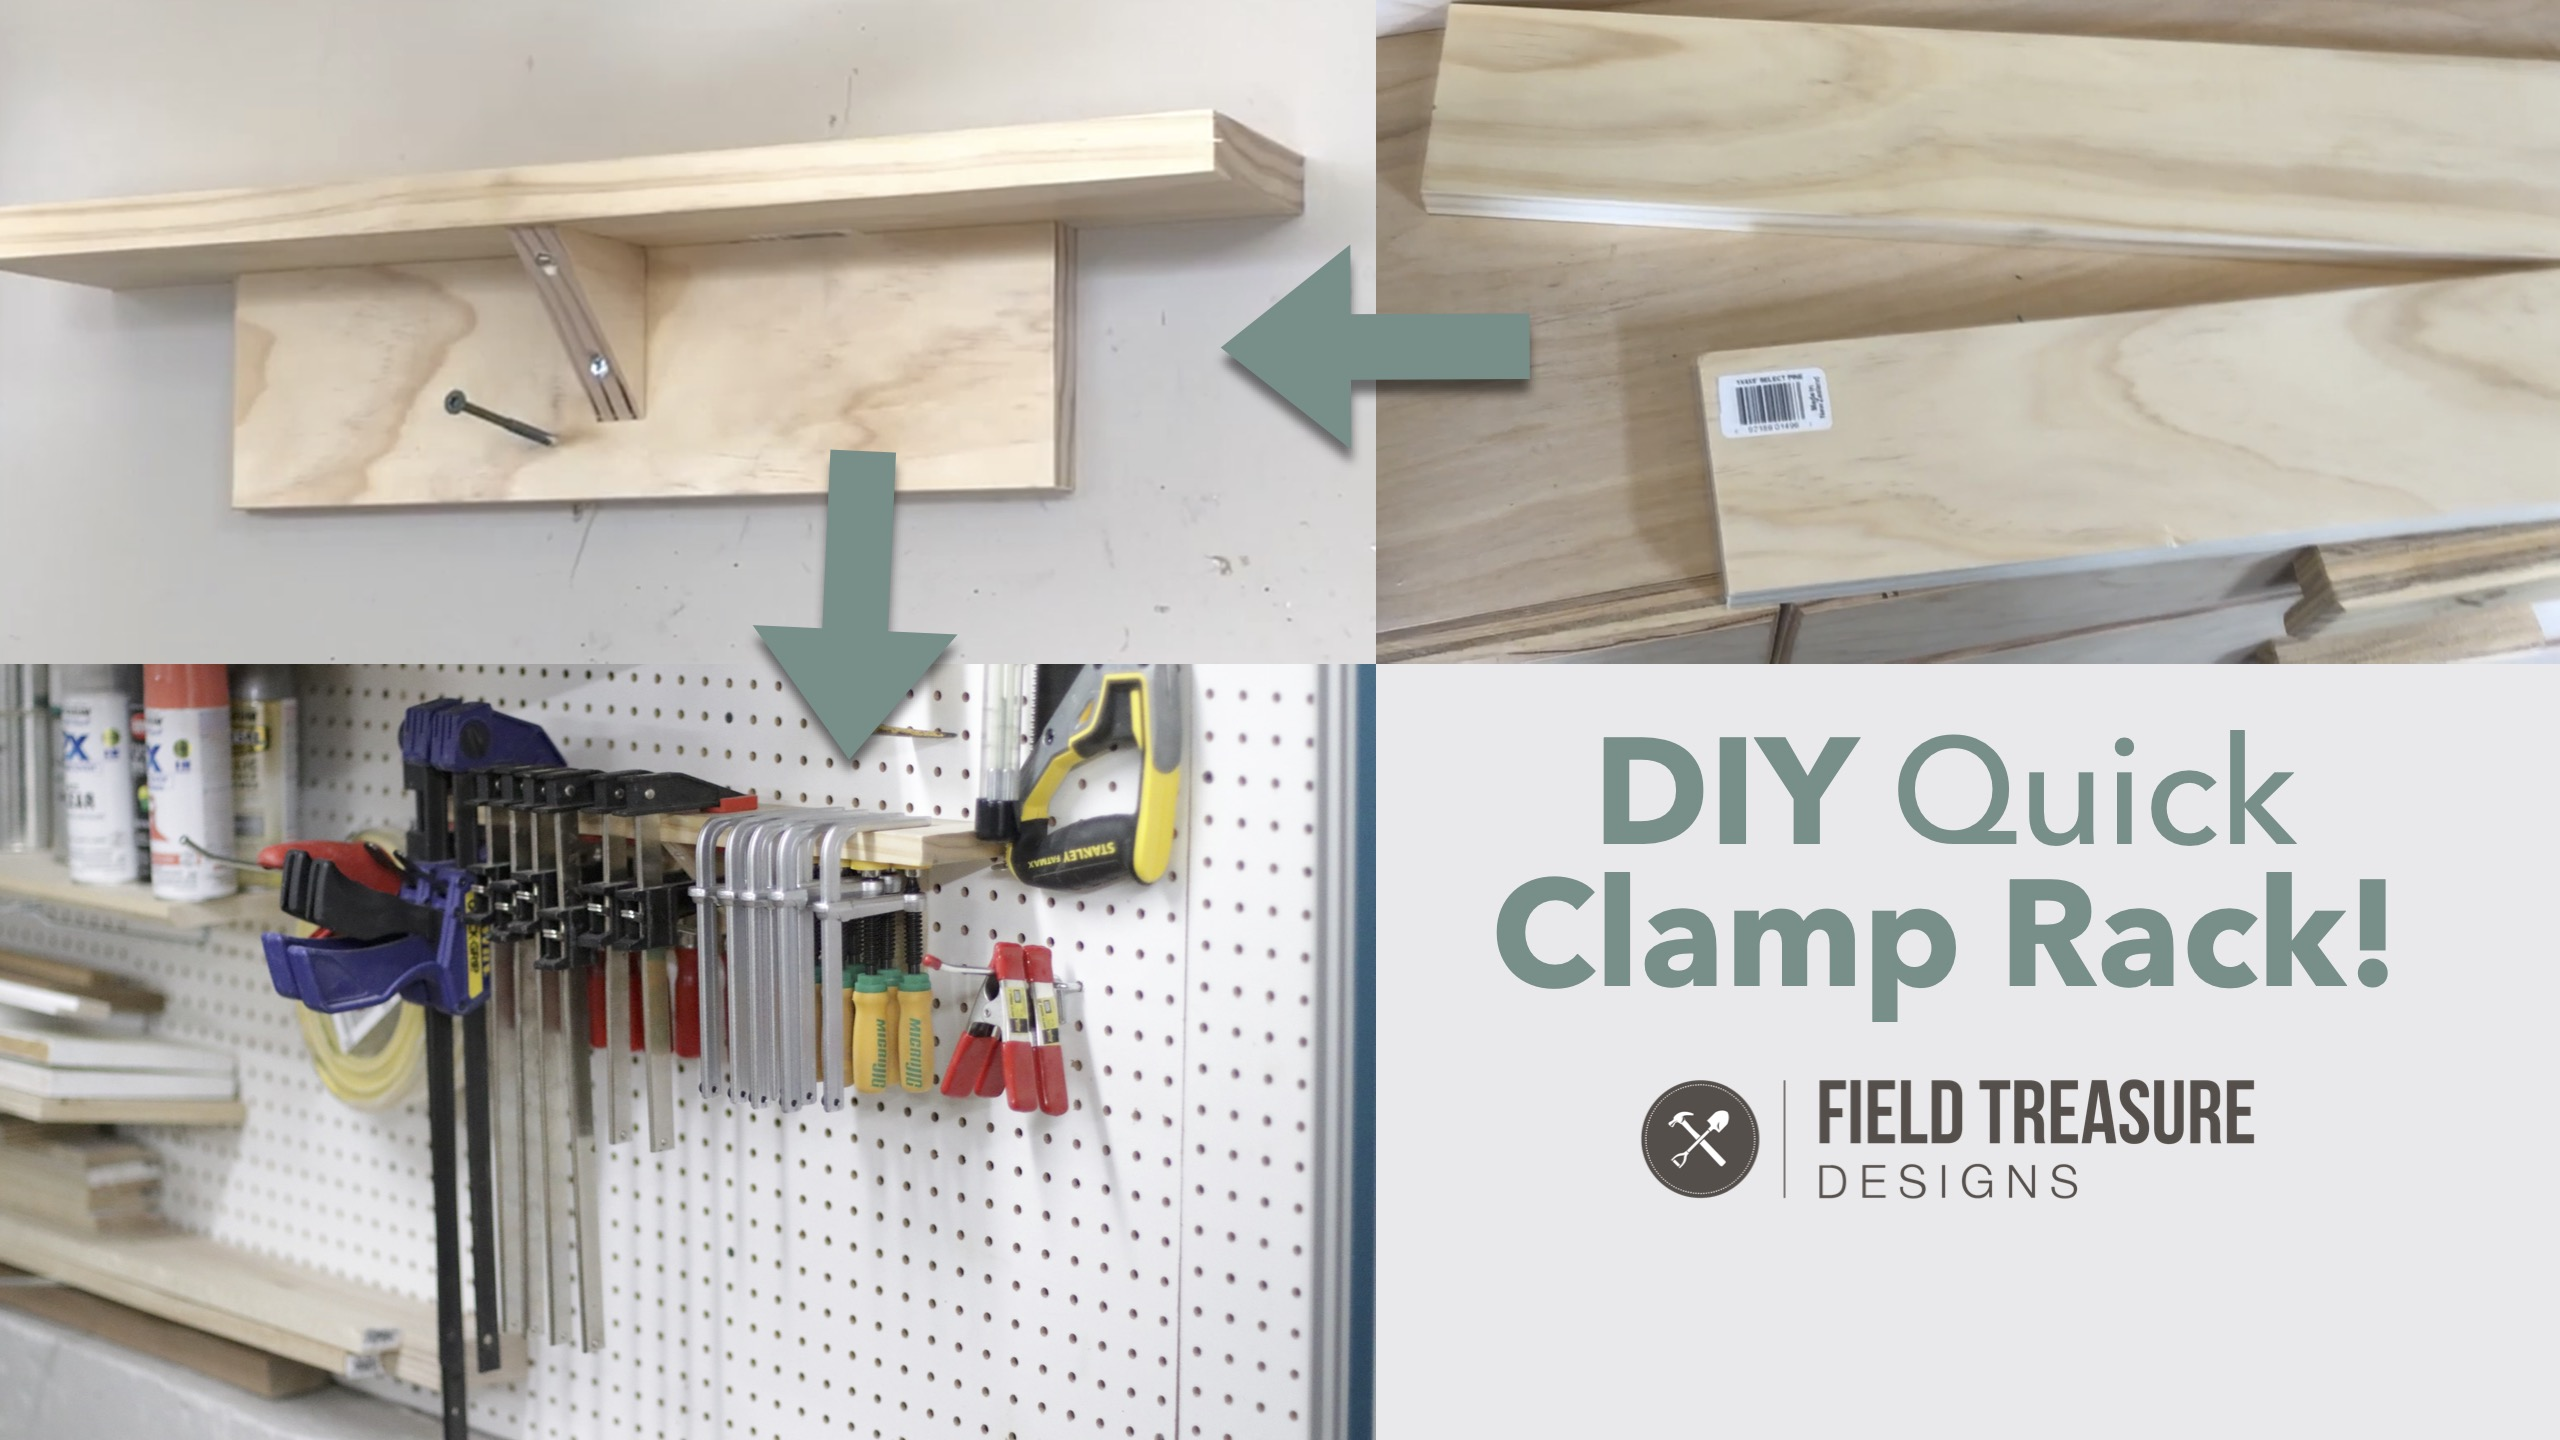 DIY Quick Clamp Rack